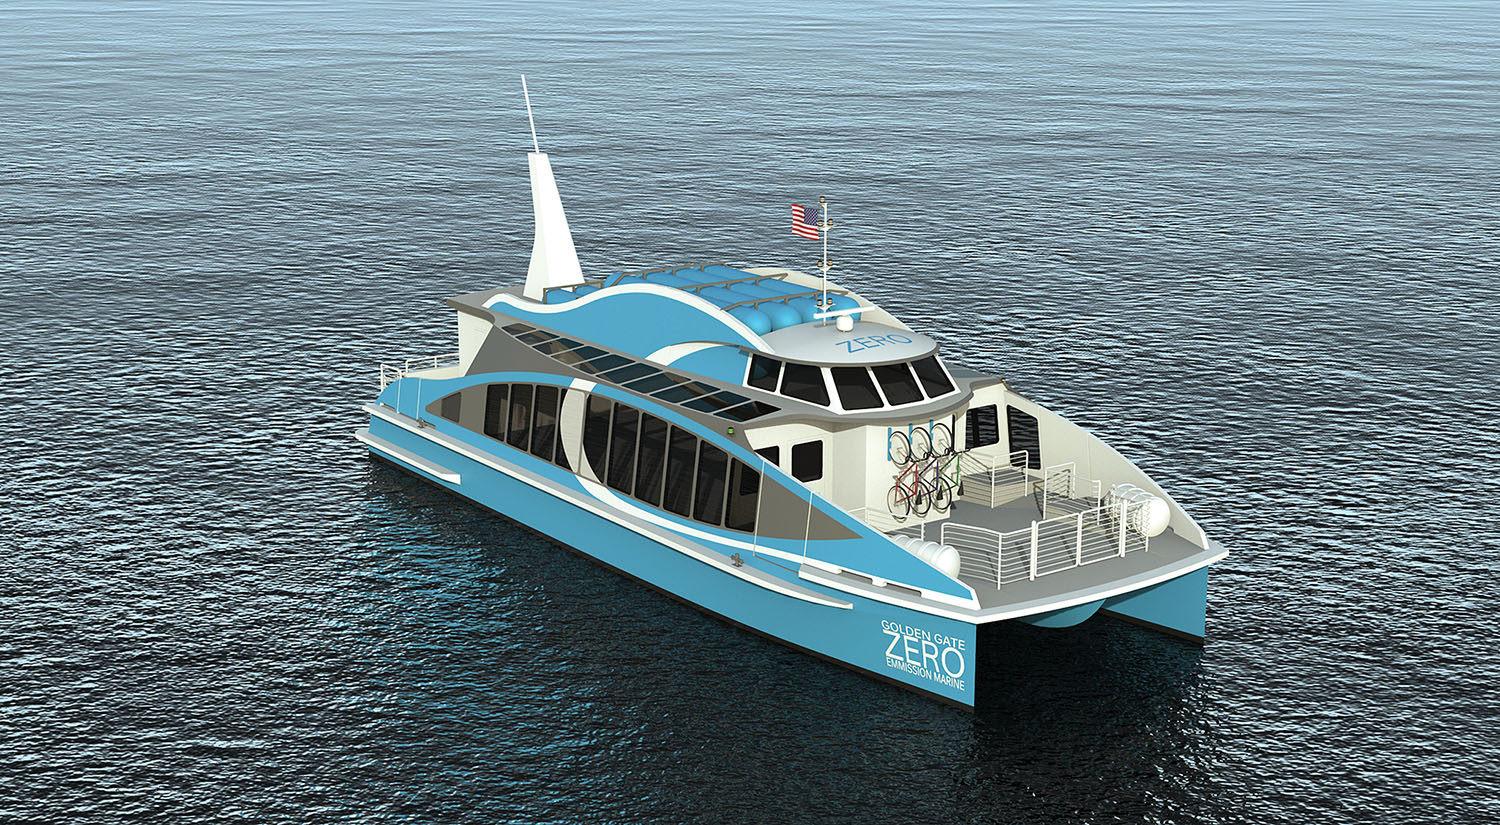 The Water-Go-Round, the new zero-emissions passenger vessel that will be launched this year. (Photo courtesy of Golden Gate Zero Emissions)